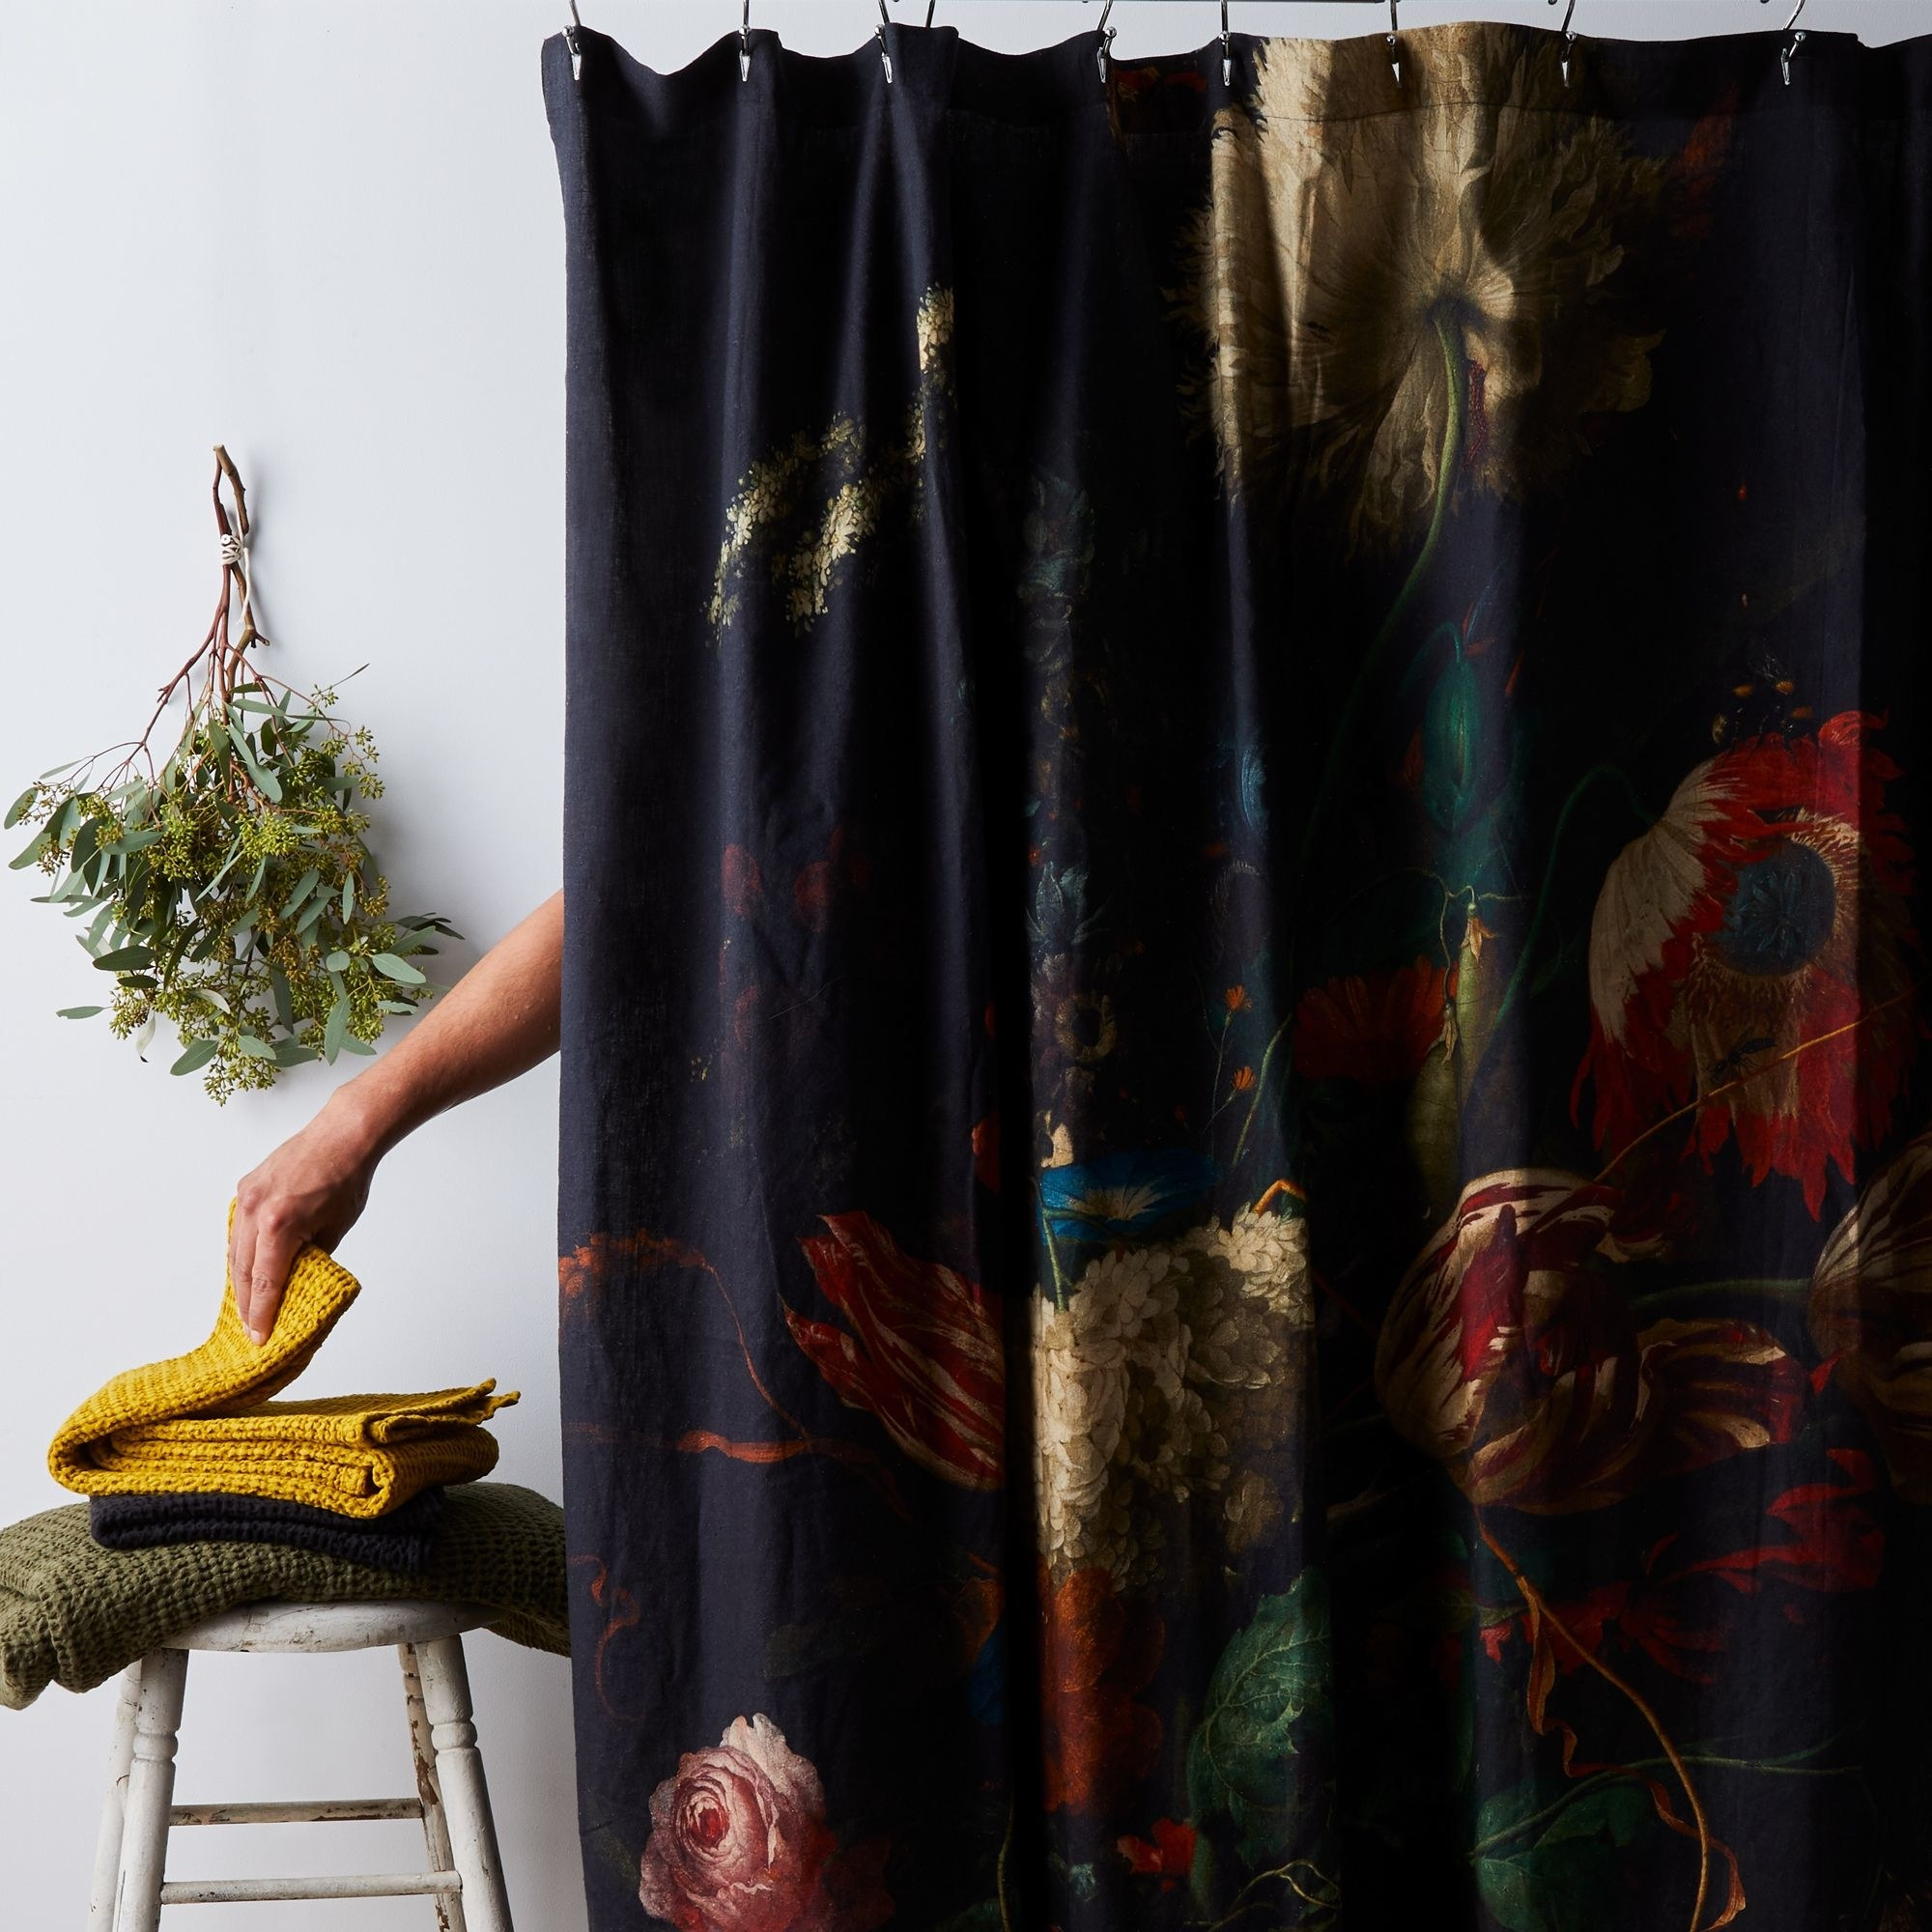 Black shower curtain with large painted flowers in various colors and shapes